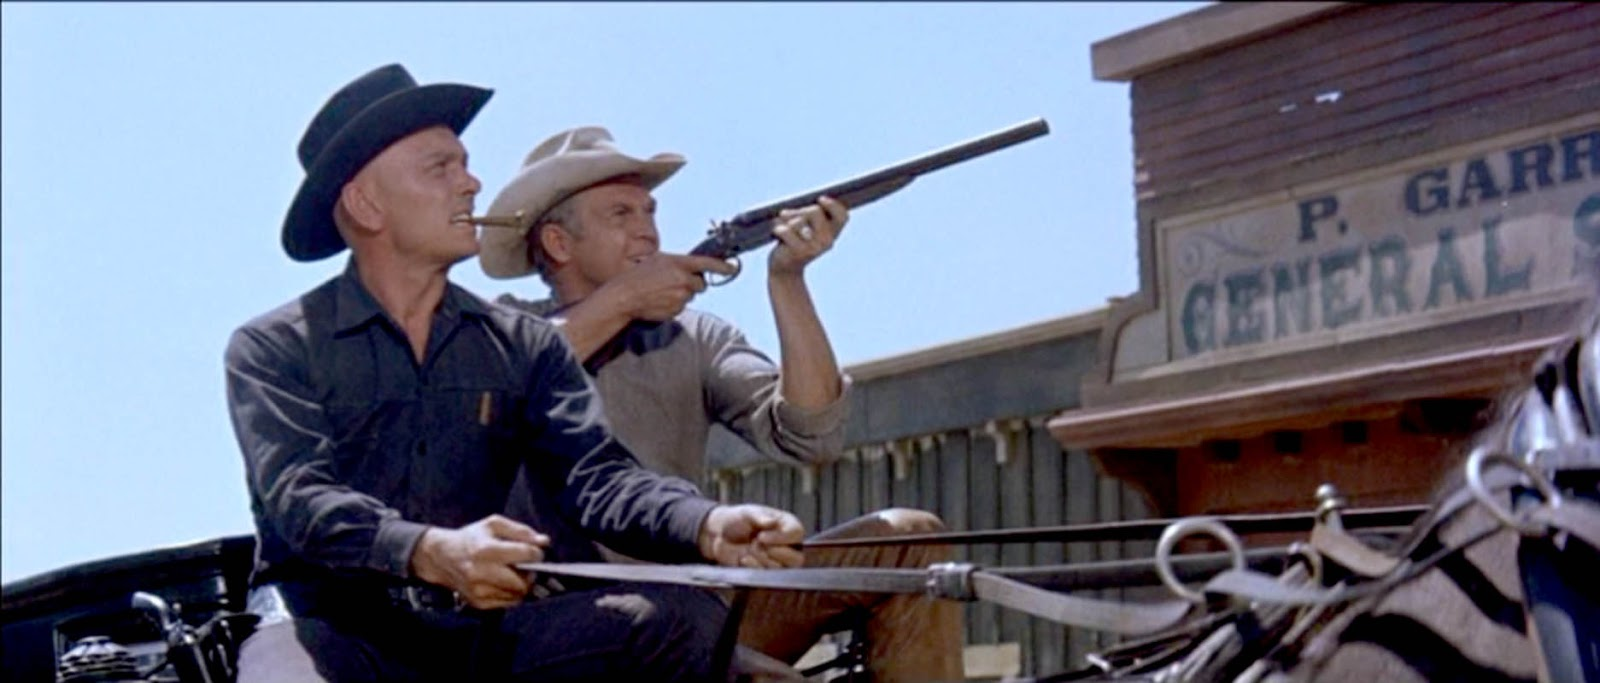 Chris yul brynner and vin steve mcqueen ride to boot hill